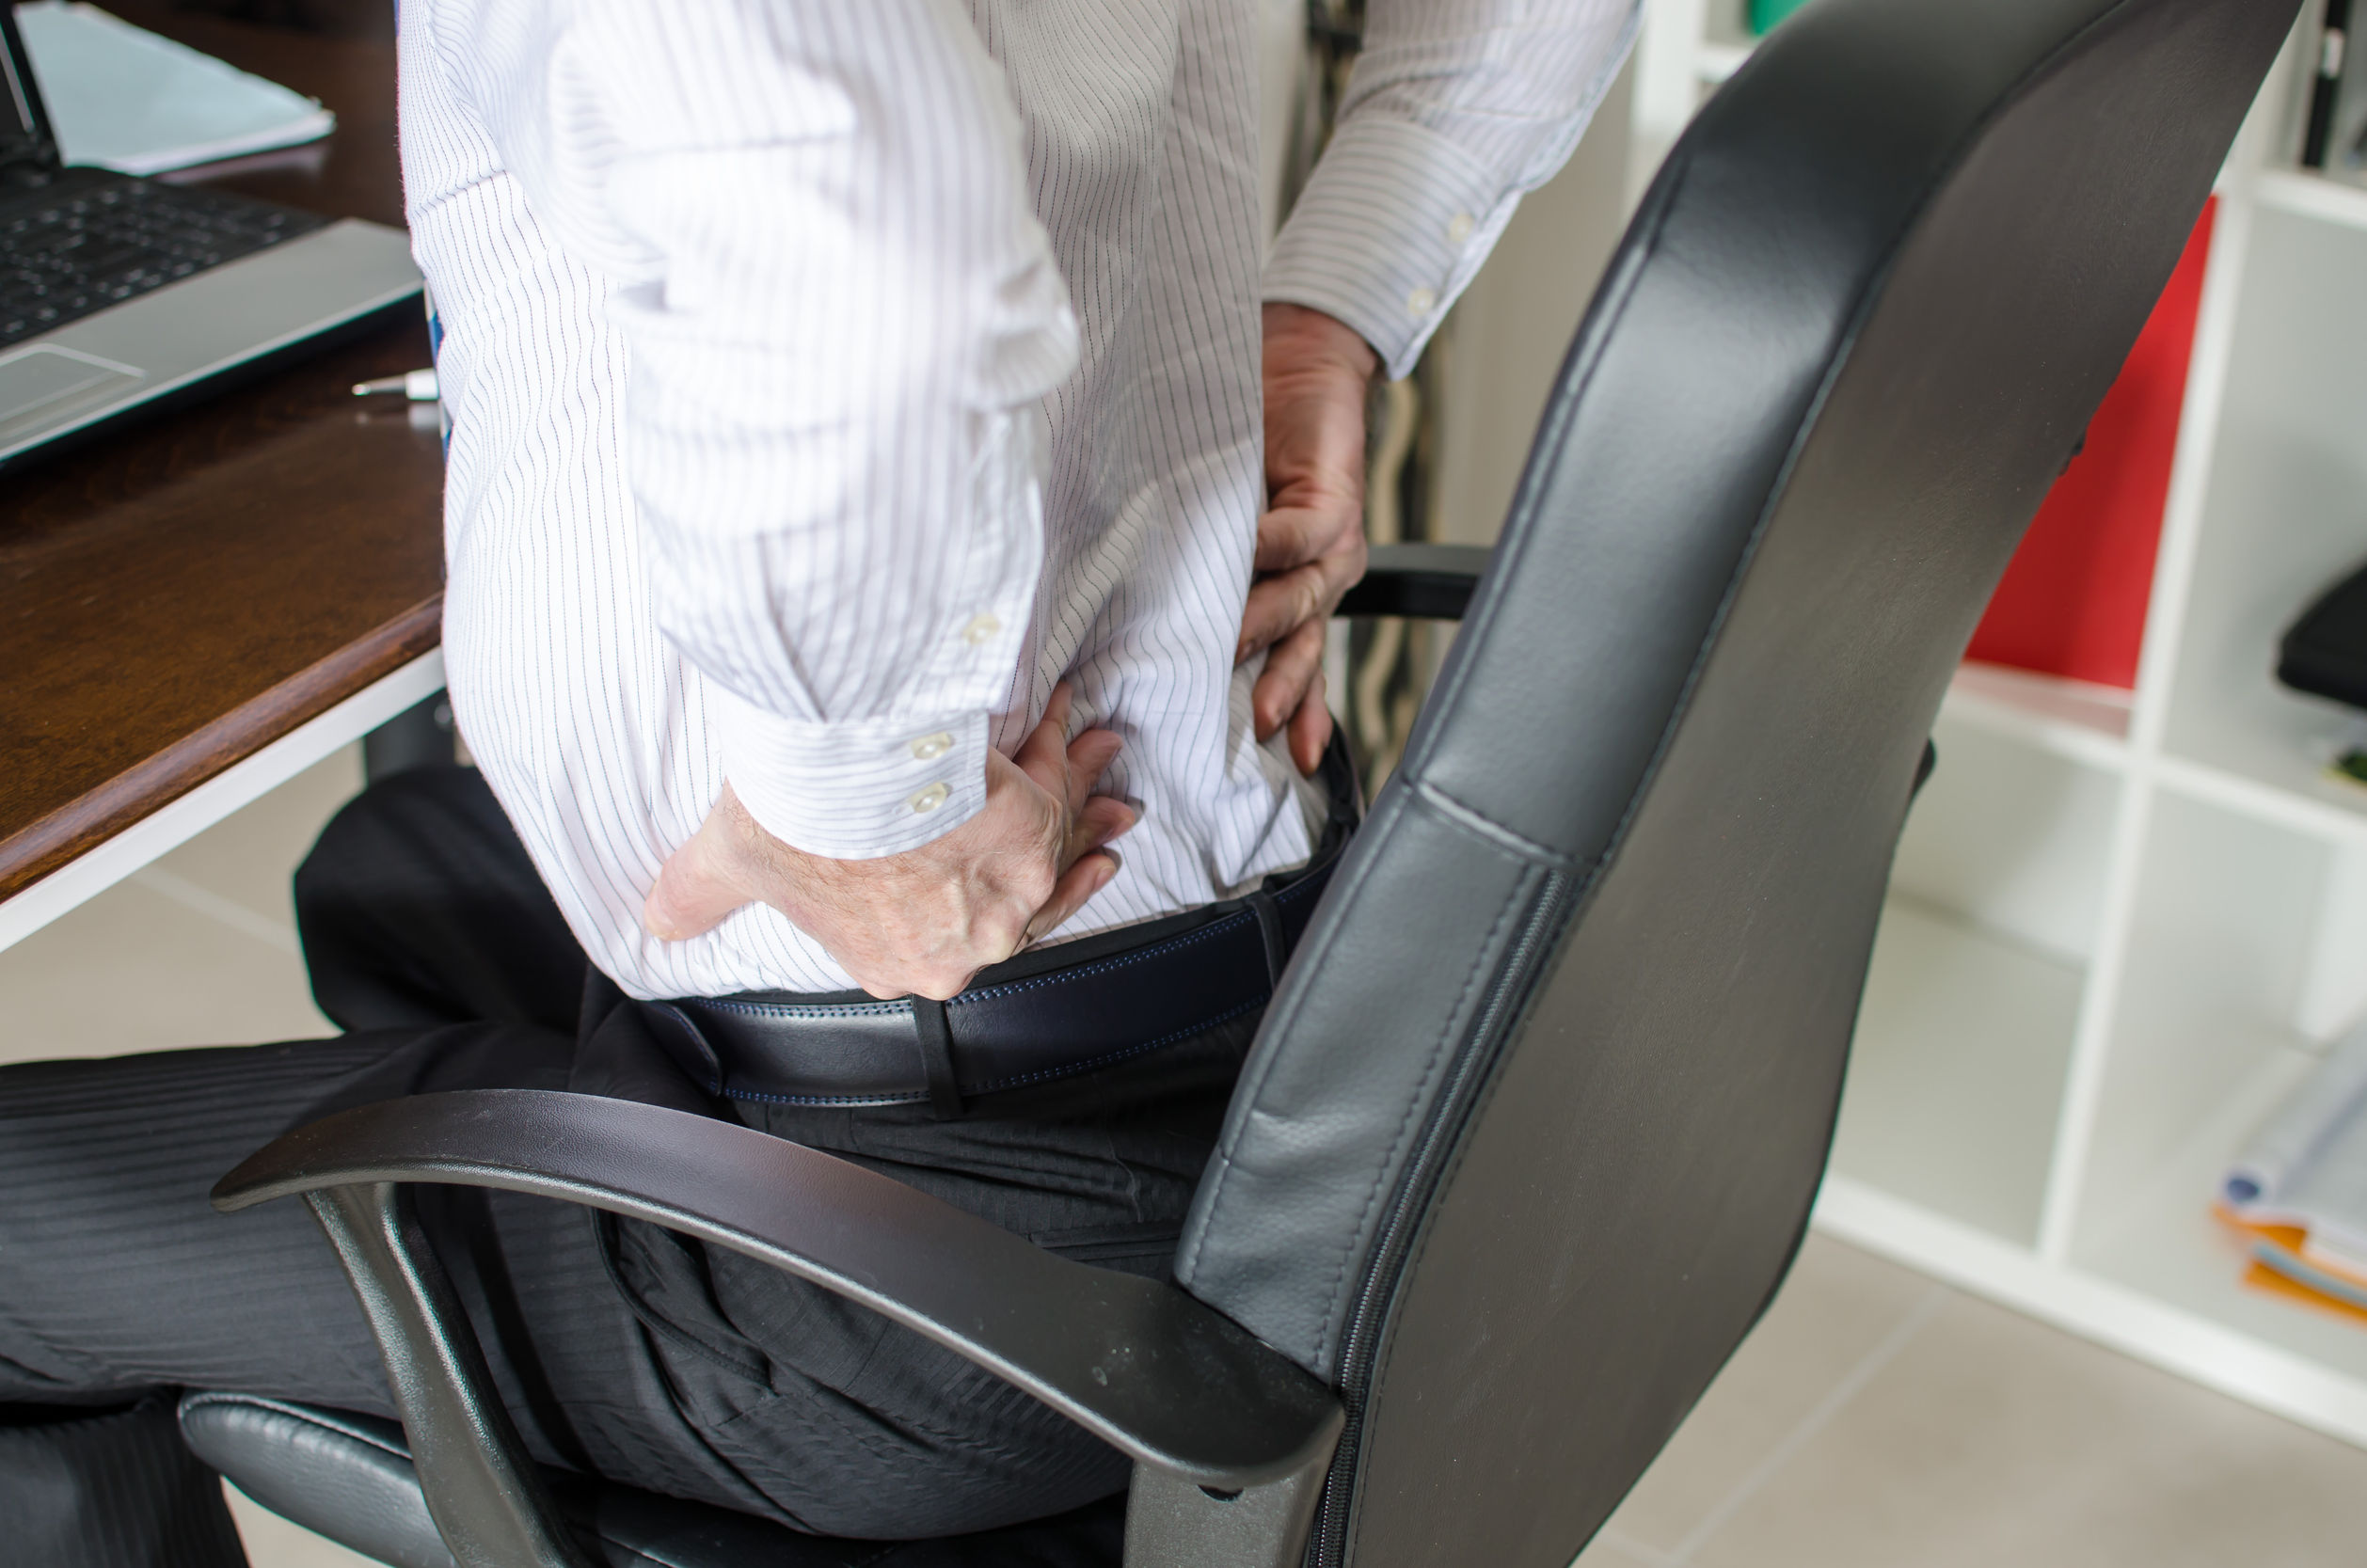 3 Quick Tips To Loosen Up Your Back After A long Day At The Office